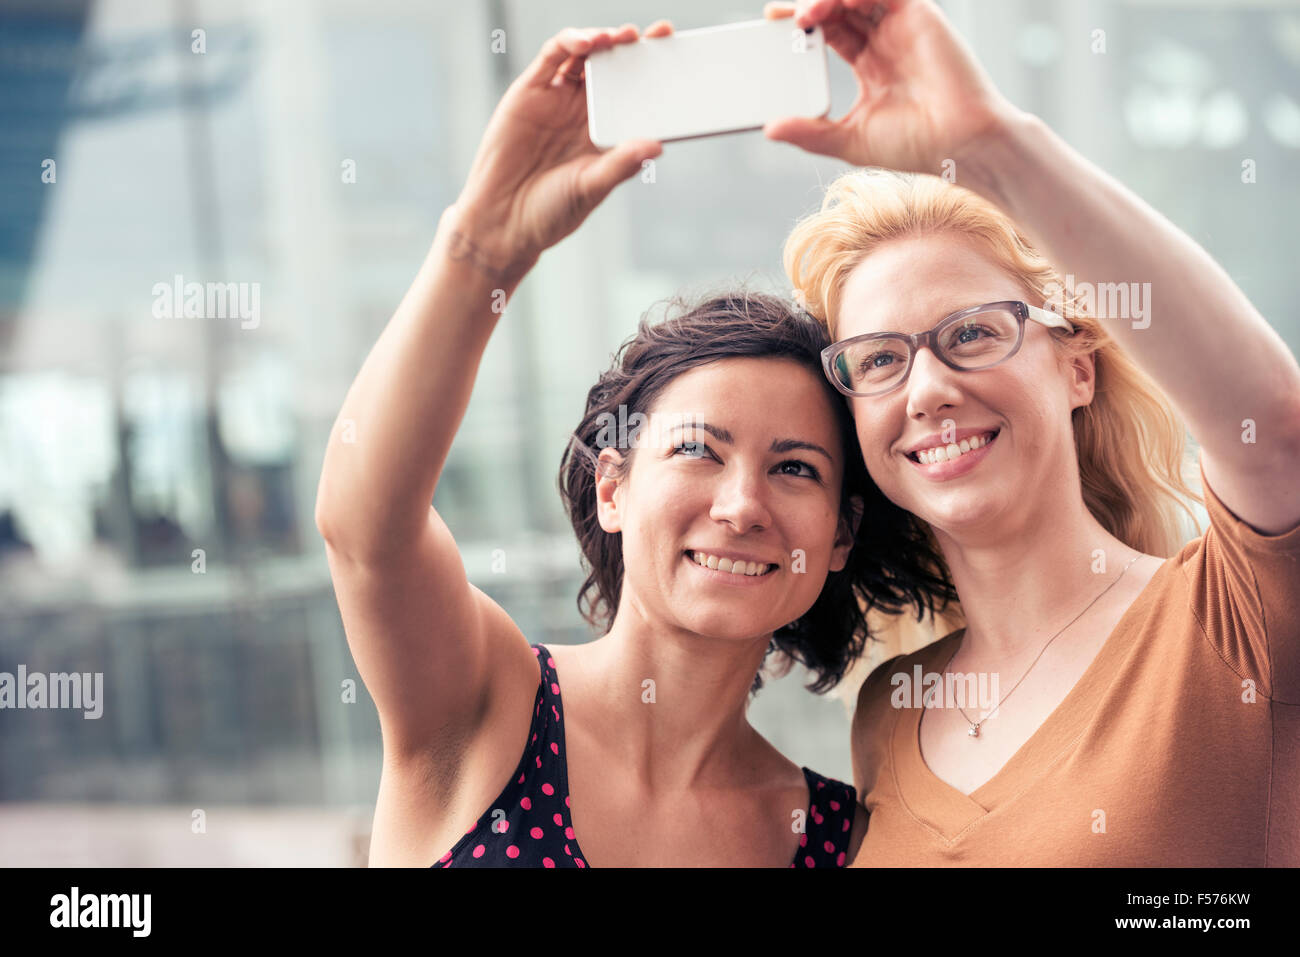 Two women on a city street, taking a selfie with a smart phone. - Stock Image